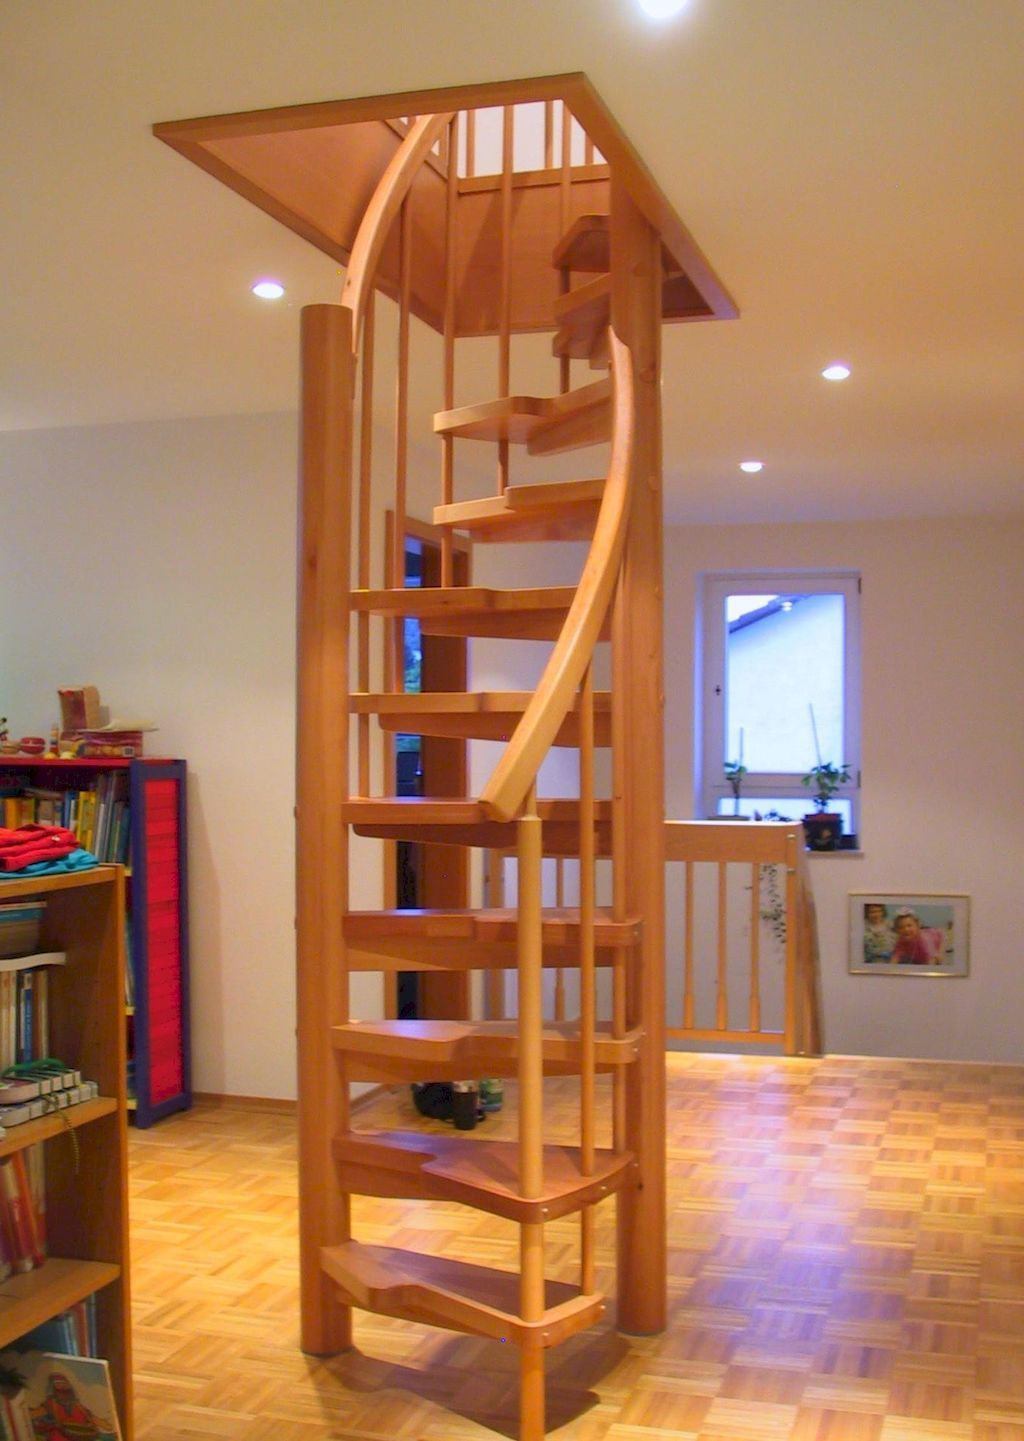 1 bedroom plus loft   amazing loft stair for tiny house ideas  Trains planes and